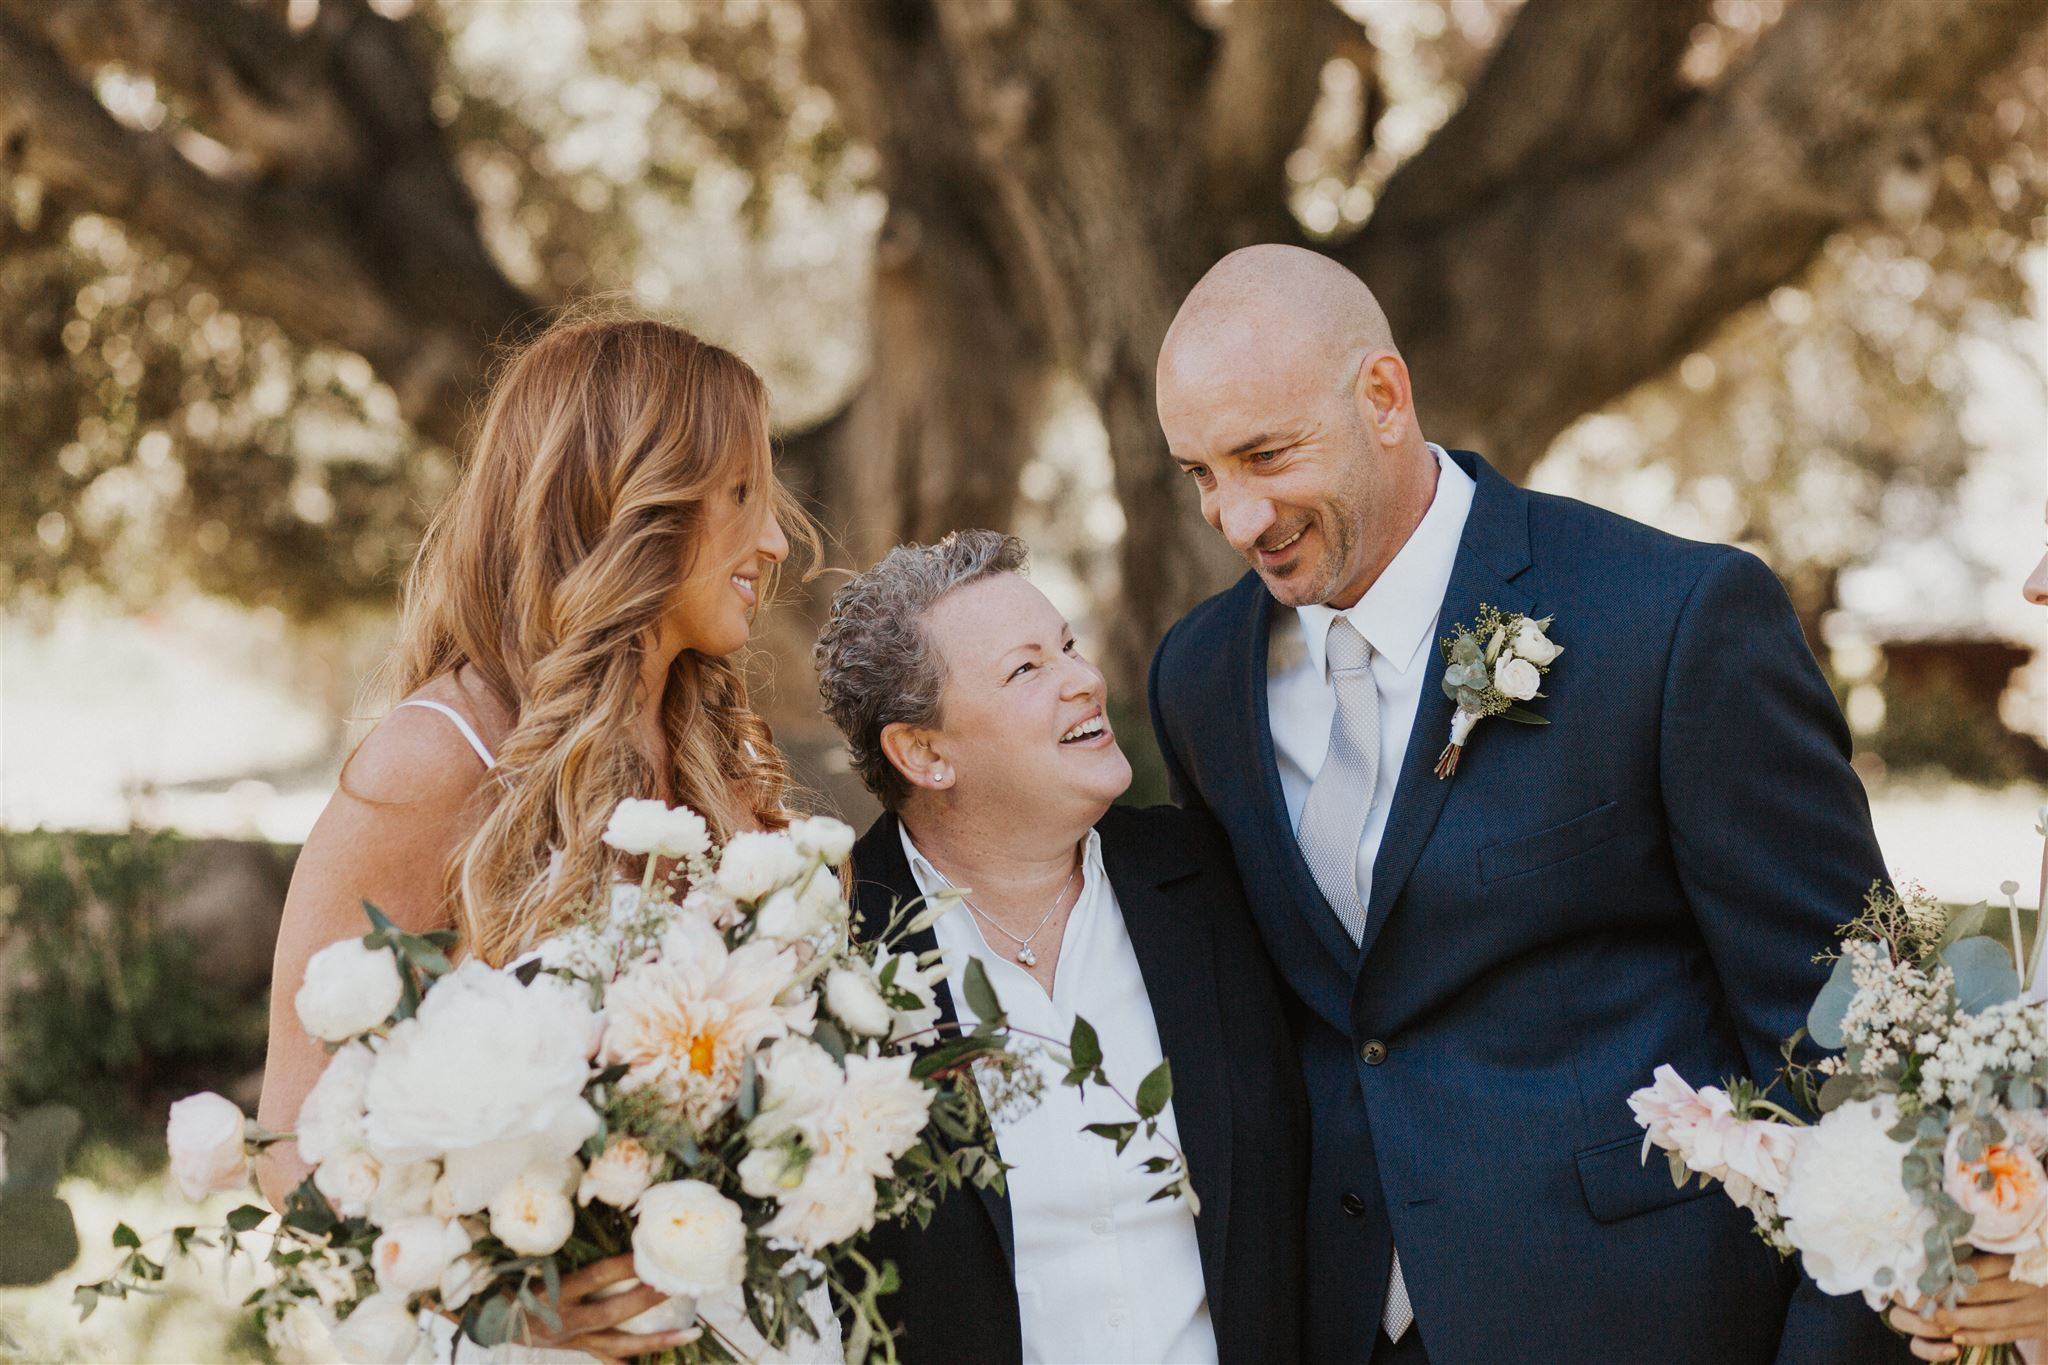 200-190524-stacy-justin-elopement-Sierra-Solis-Photography_websize.jpg